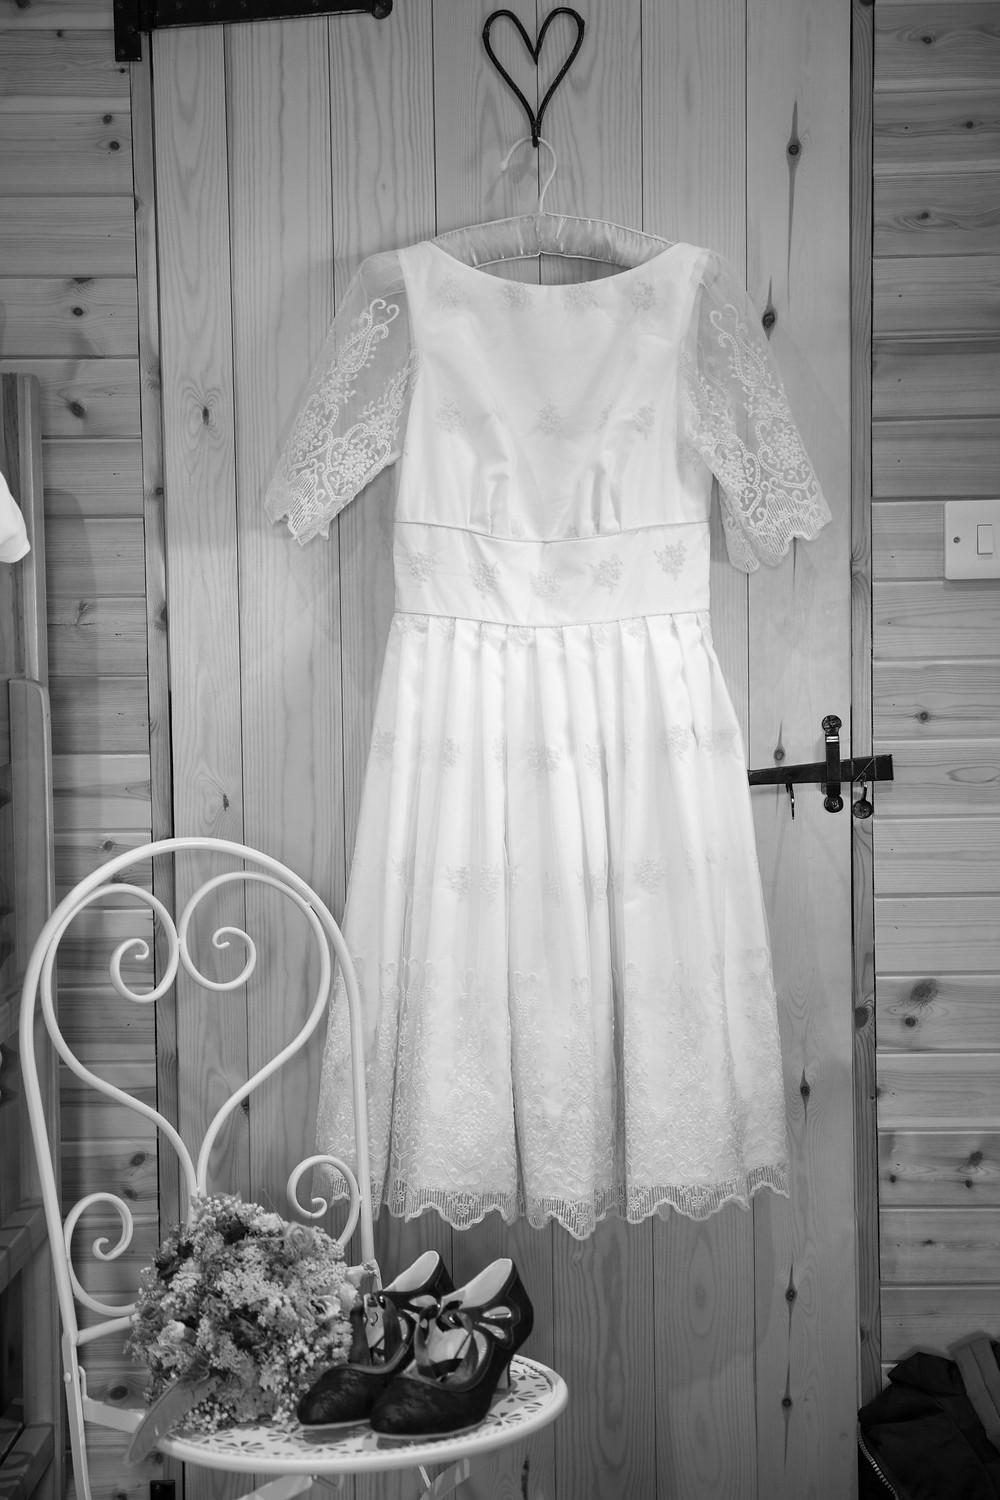 Photograph of hanging wedding dress by Jack Cook Photographer